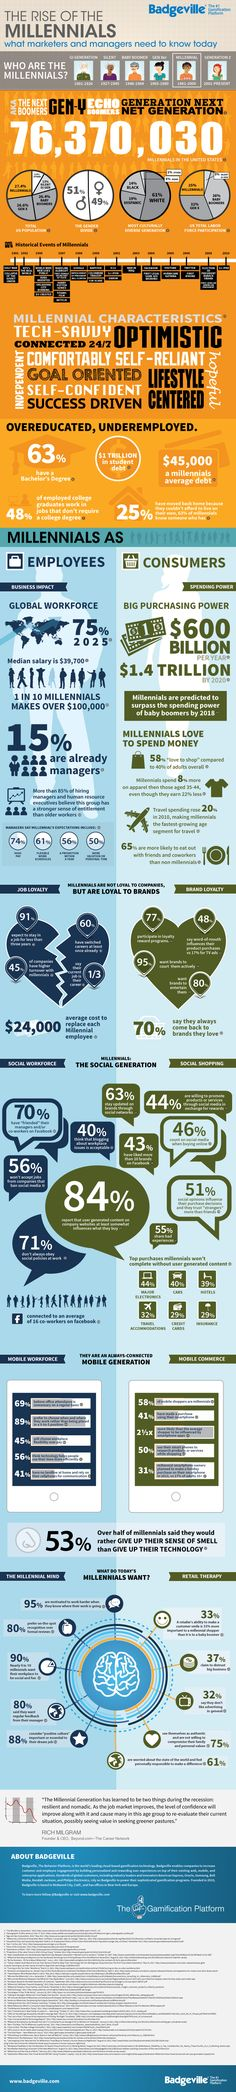 Everything You Need to Know About Millennials ... But Were Afraid to Ask #infographic